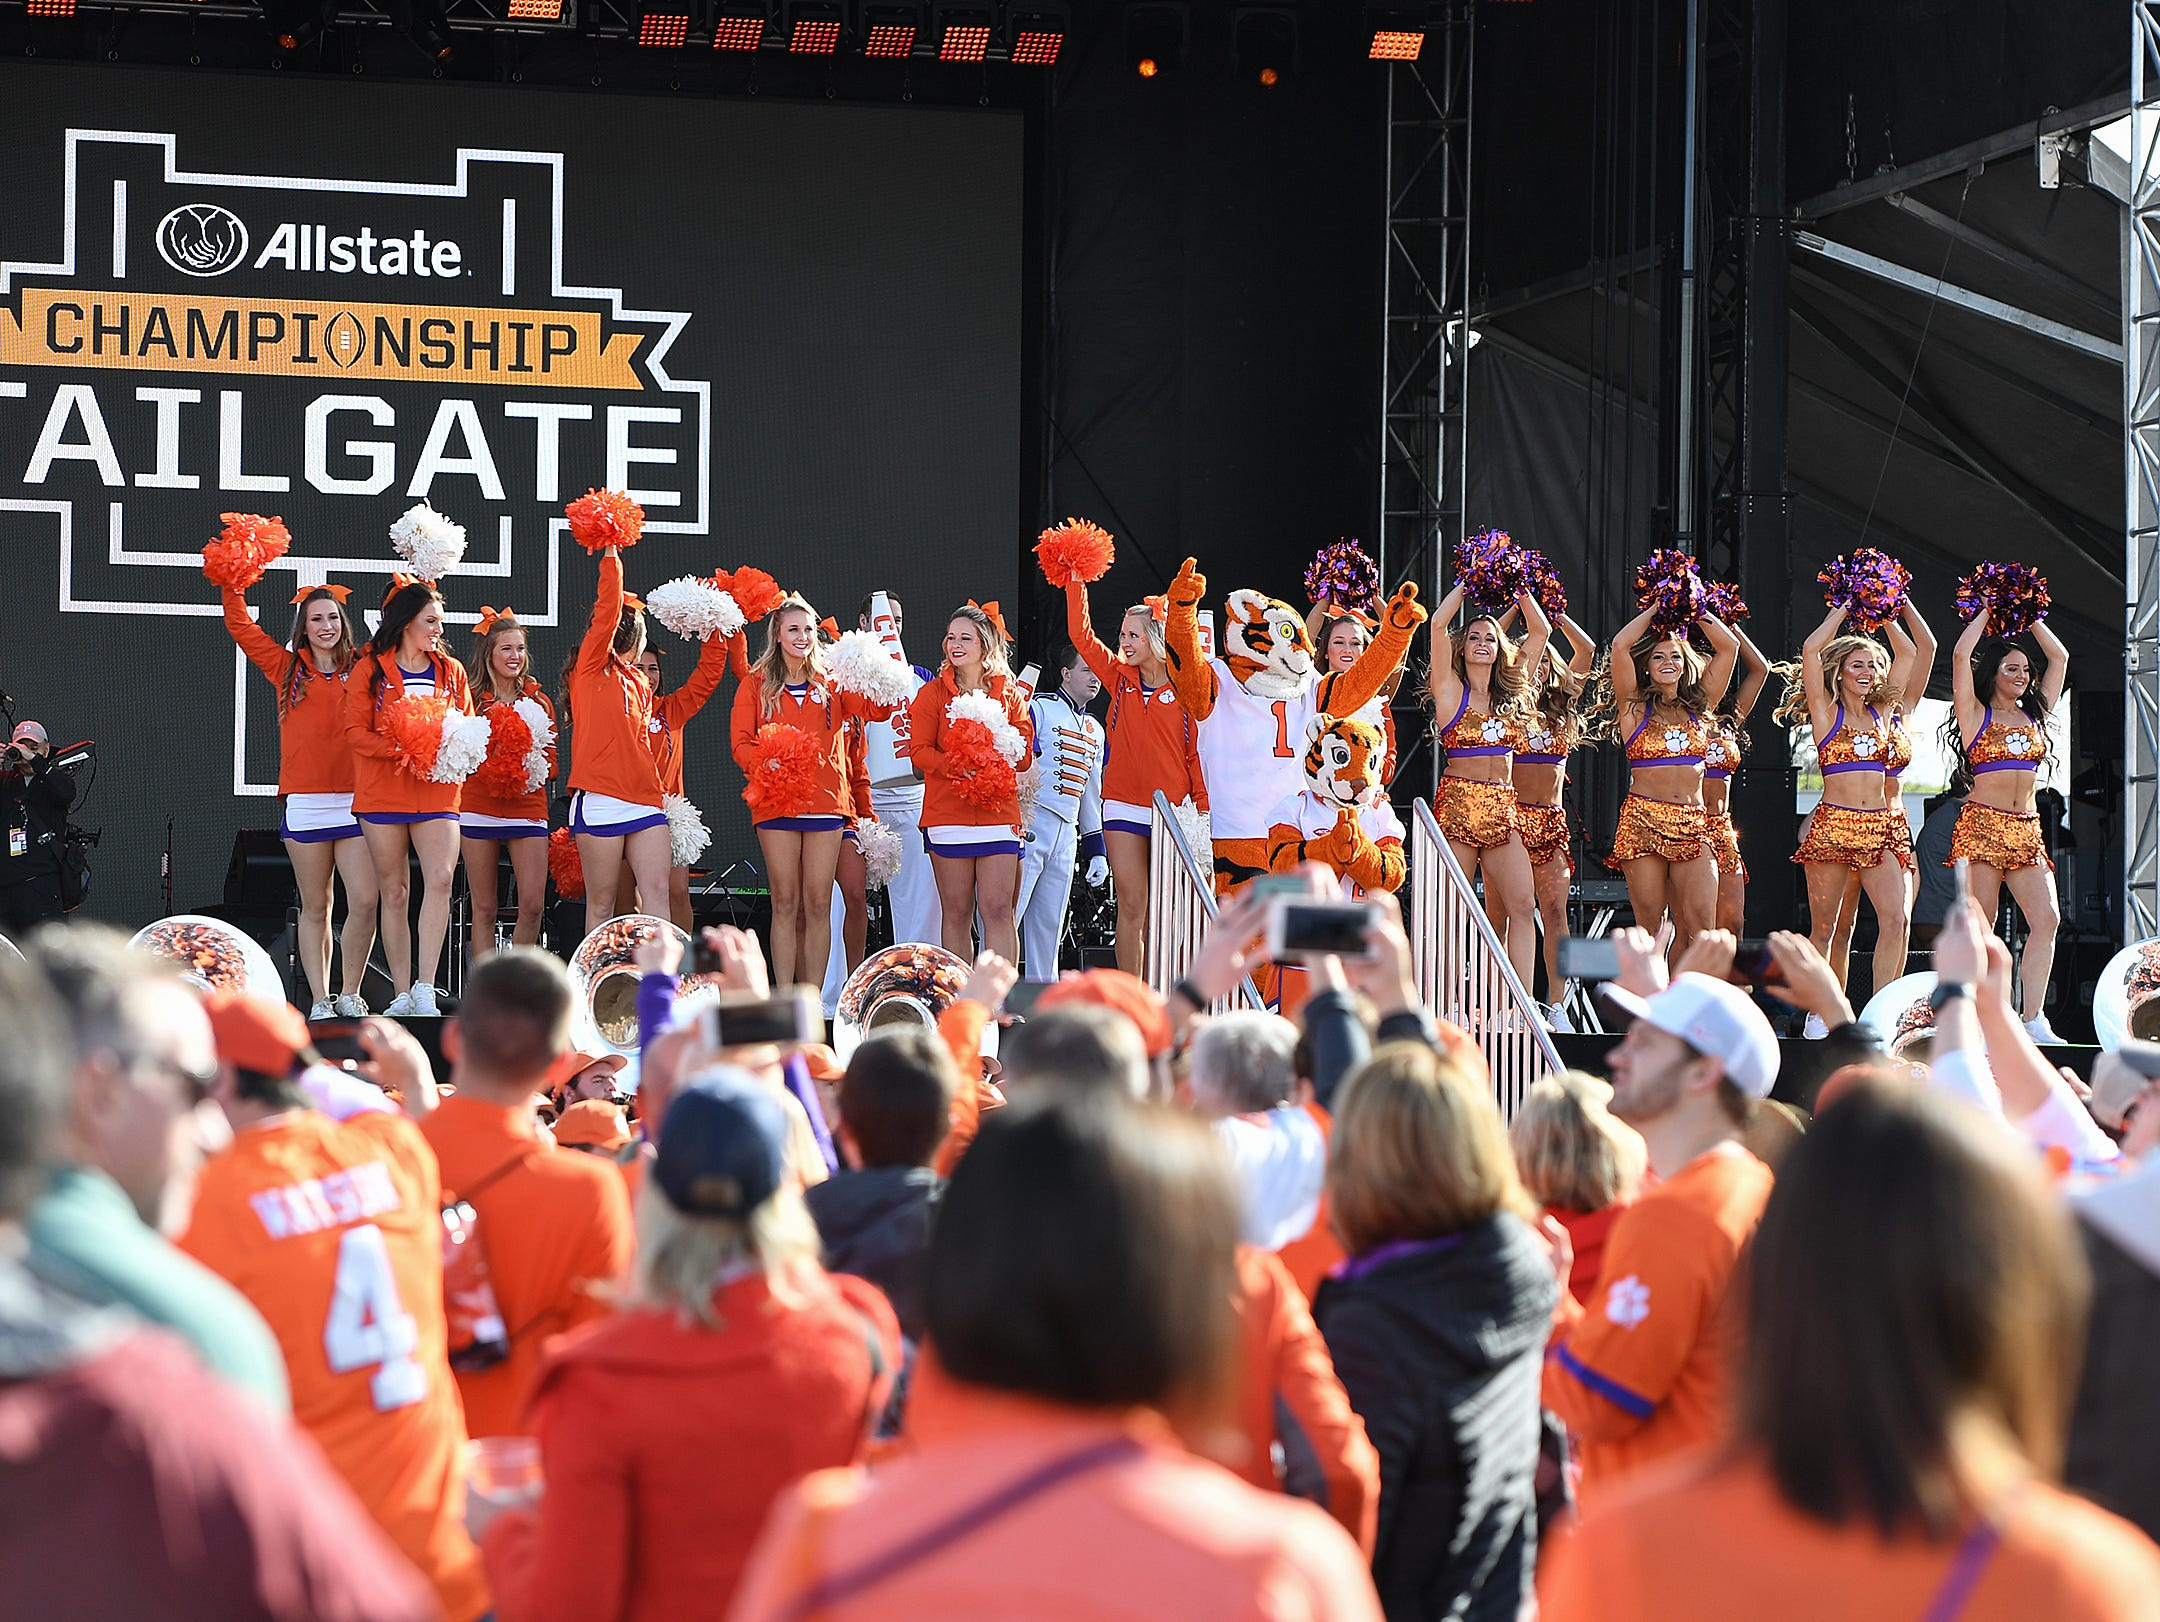 Clemson's cheerleaders and Rally Cats during the College Football Championship Playoff Tailgate outside Levi's Stadium in Santa Clara, CA Monday, January 7, 2019.